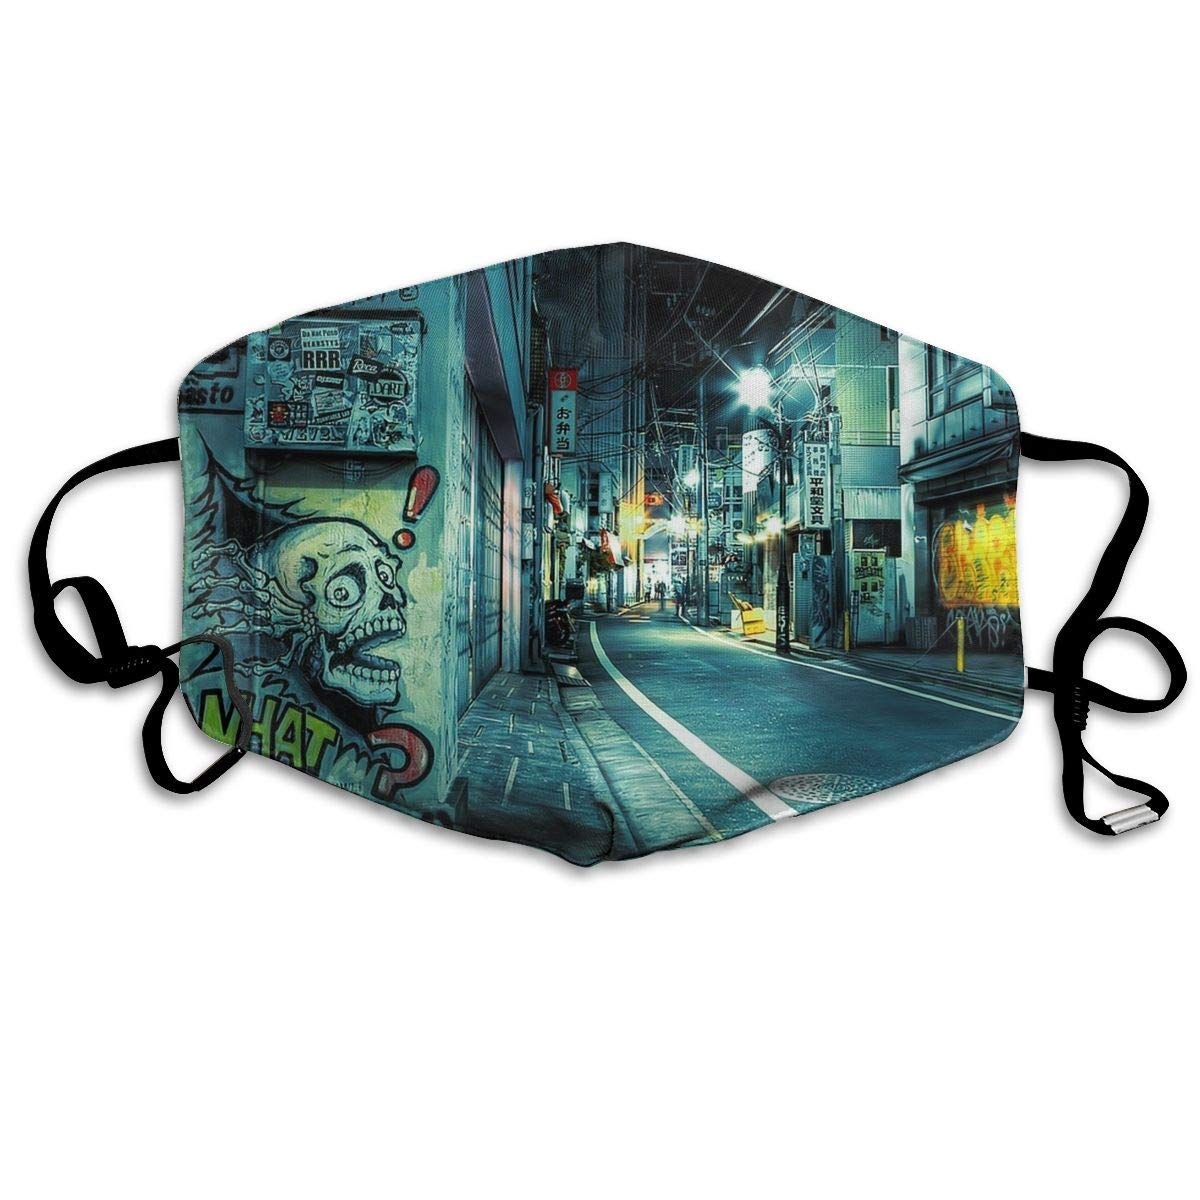 Vbnbvn Boca Máscara,Mascarillas,Máscaras bucales,Anti Dust Mask Underground Hip Hop Anti Pollution Washable Reusable Mouth Masks for Man Woman